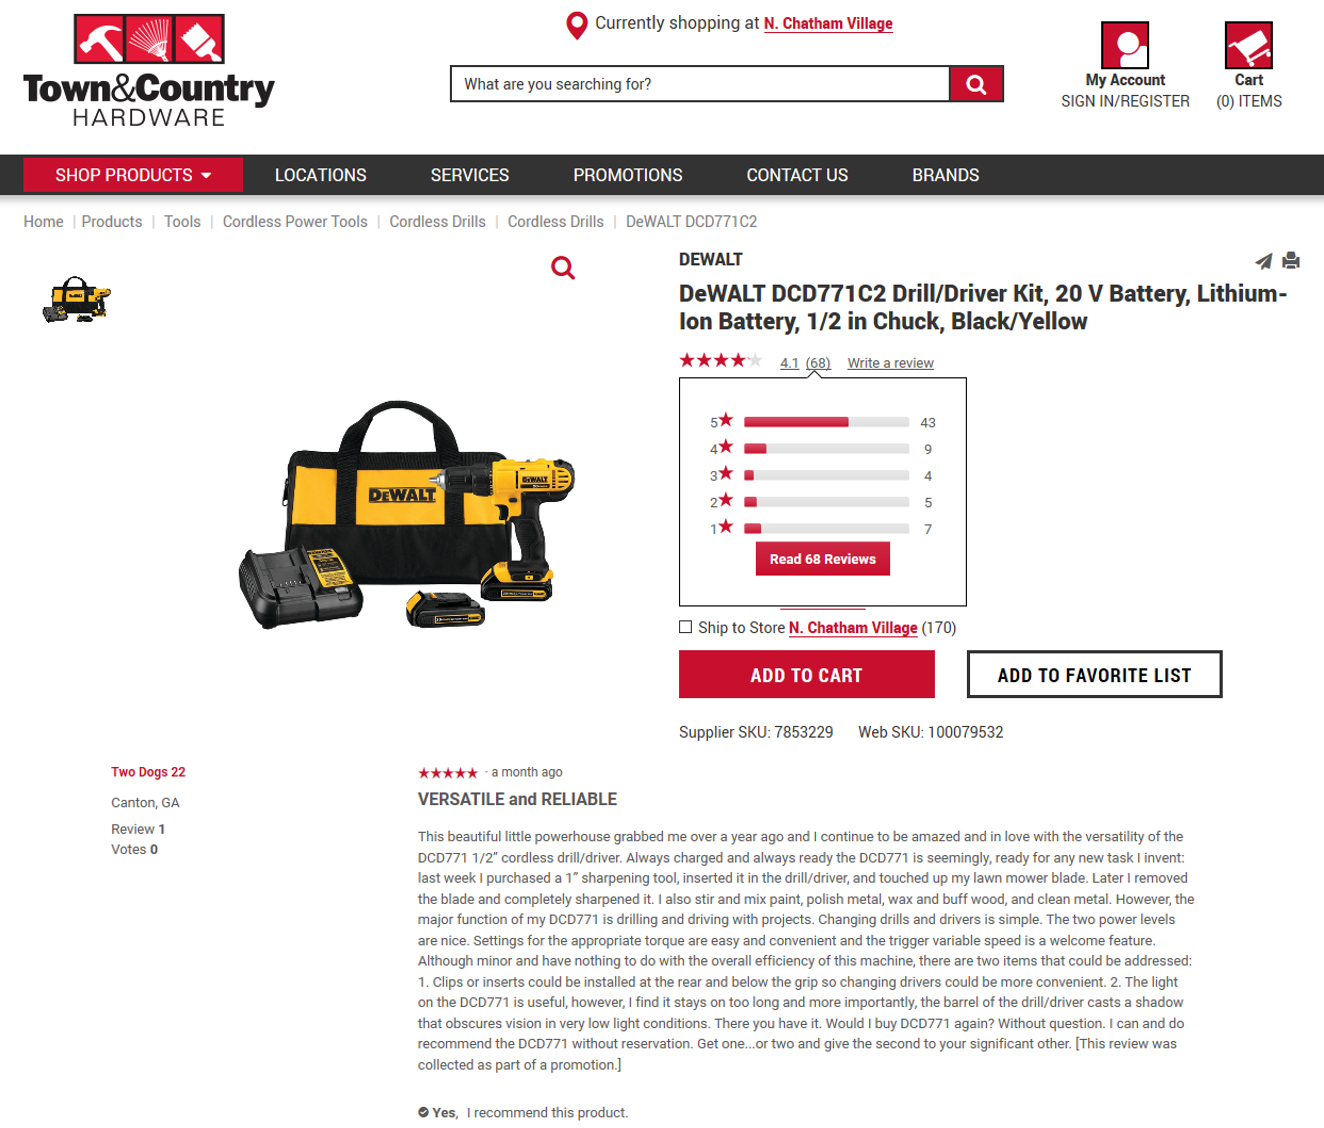 DeWALT Drill review page